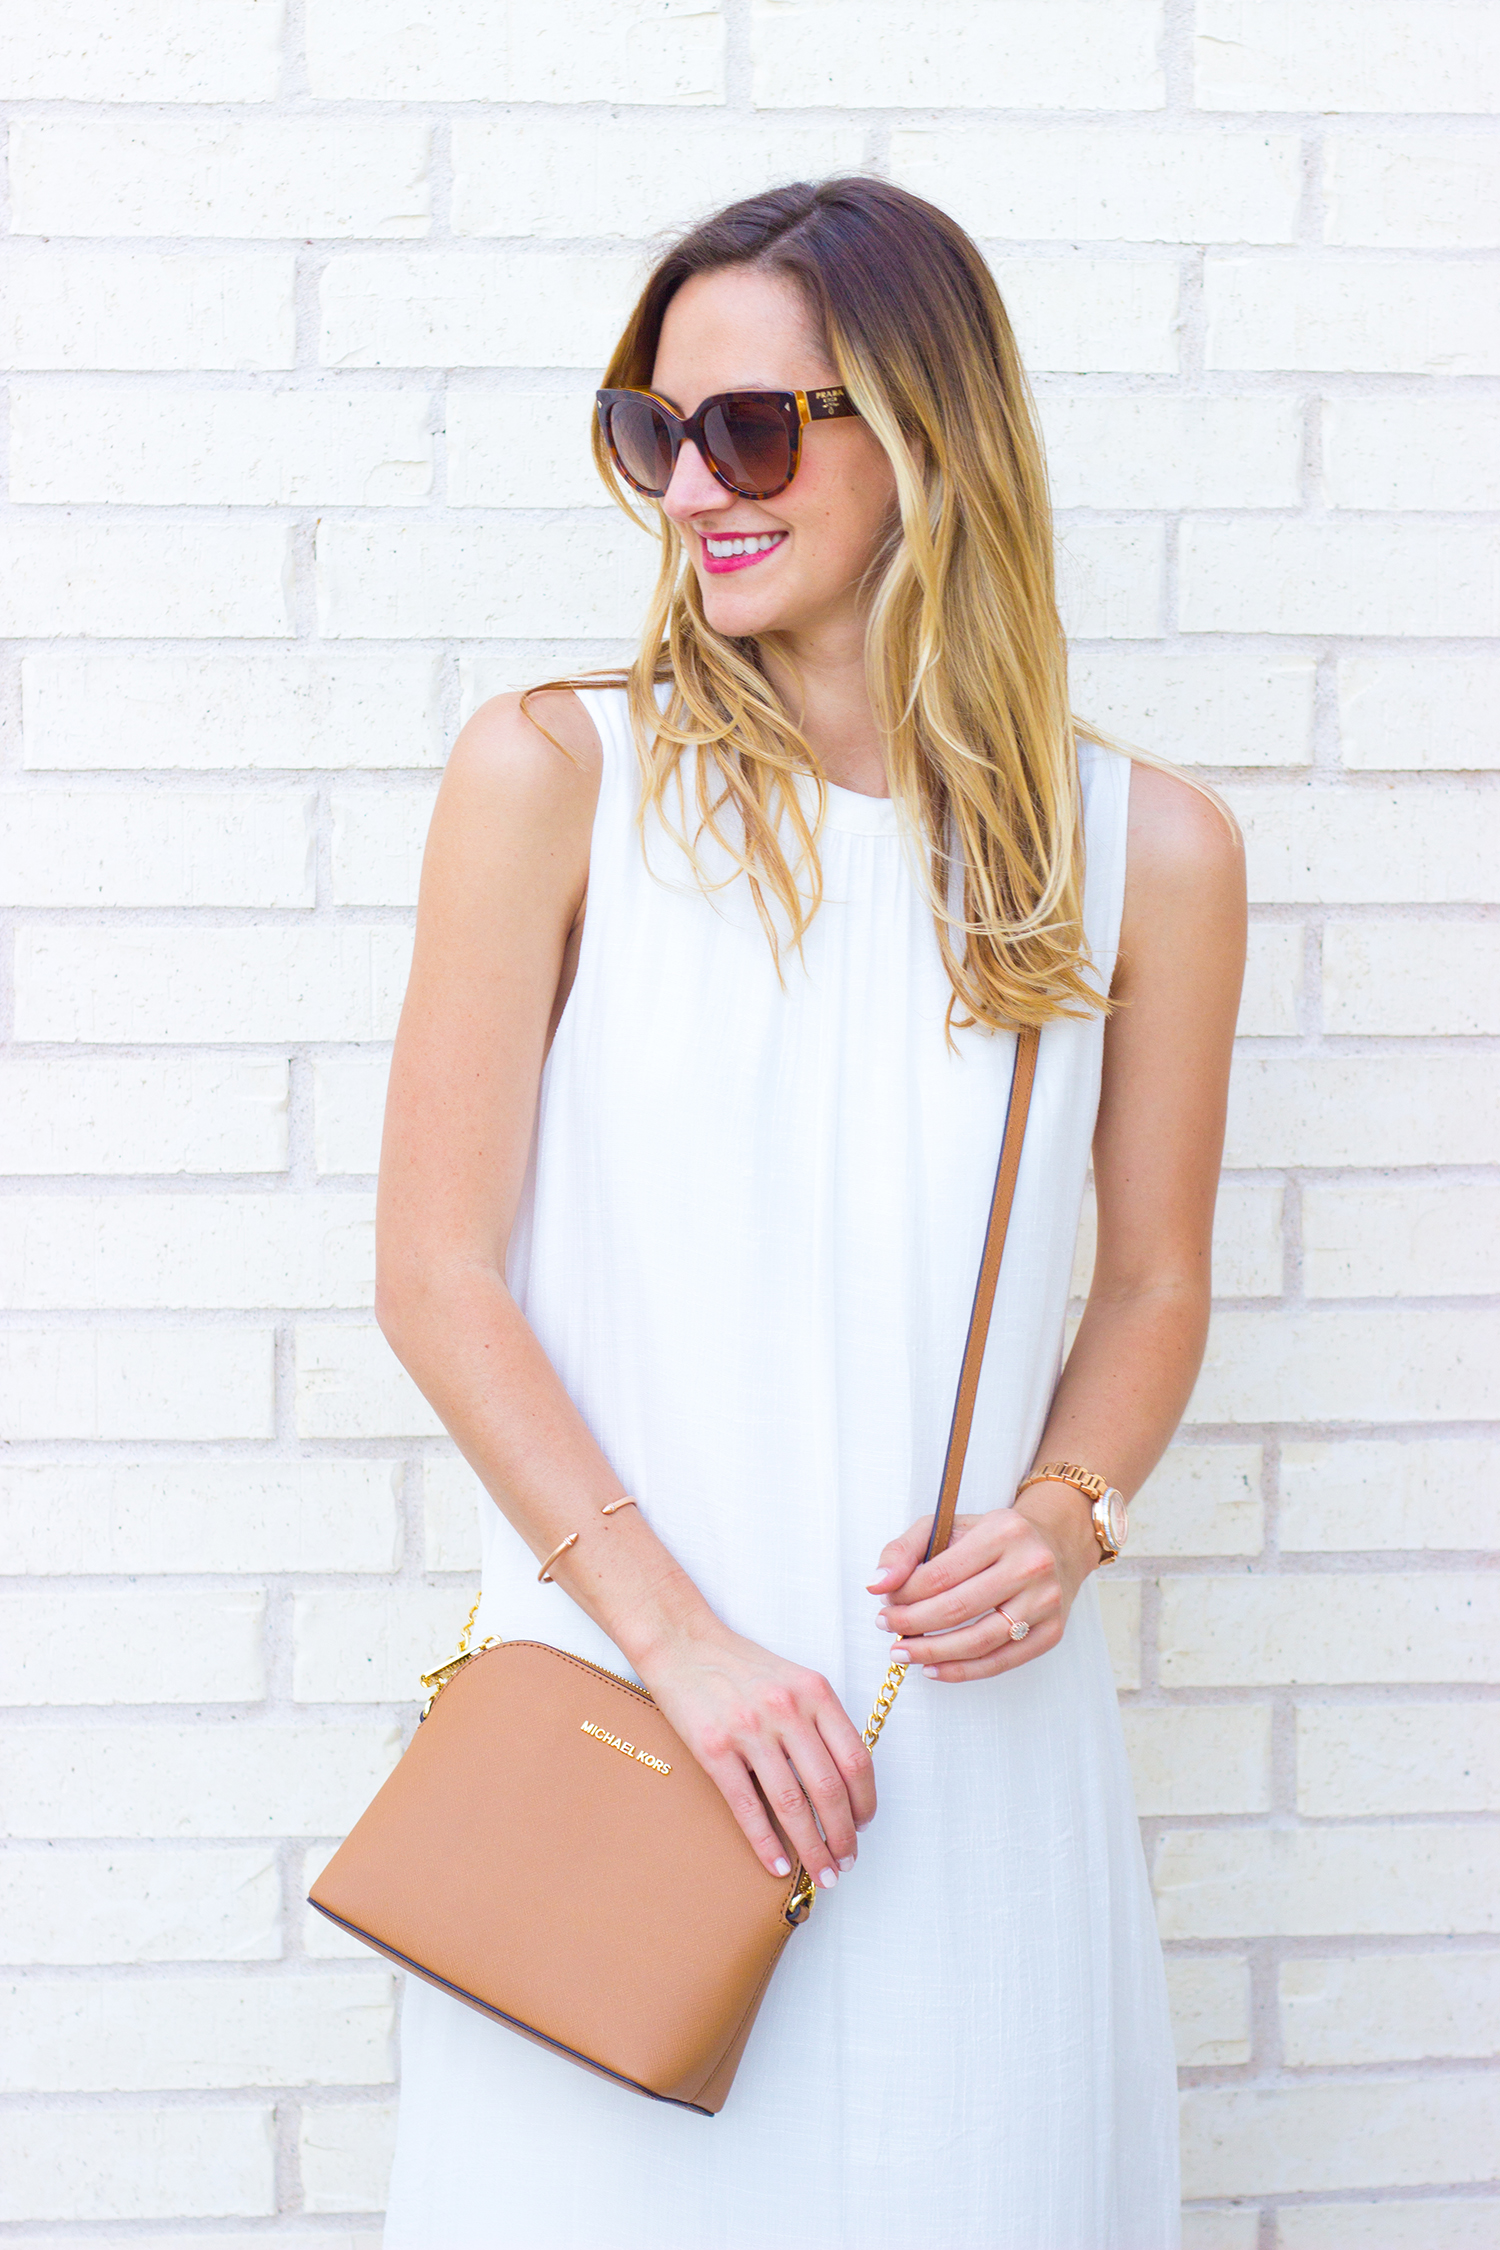 livvyland-blog-olivia-watson-white-sheer-midi-dress-painted-threads-braided-sandal-heels-austin-texas-fashion-blogger-rose-gold-kendra-scott-prada-cateye-sunglasses-spring-outfit-3